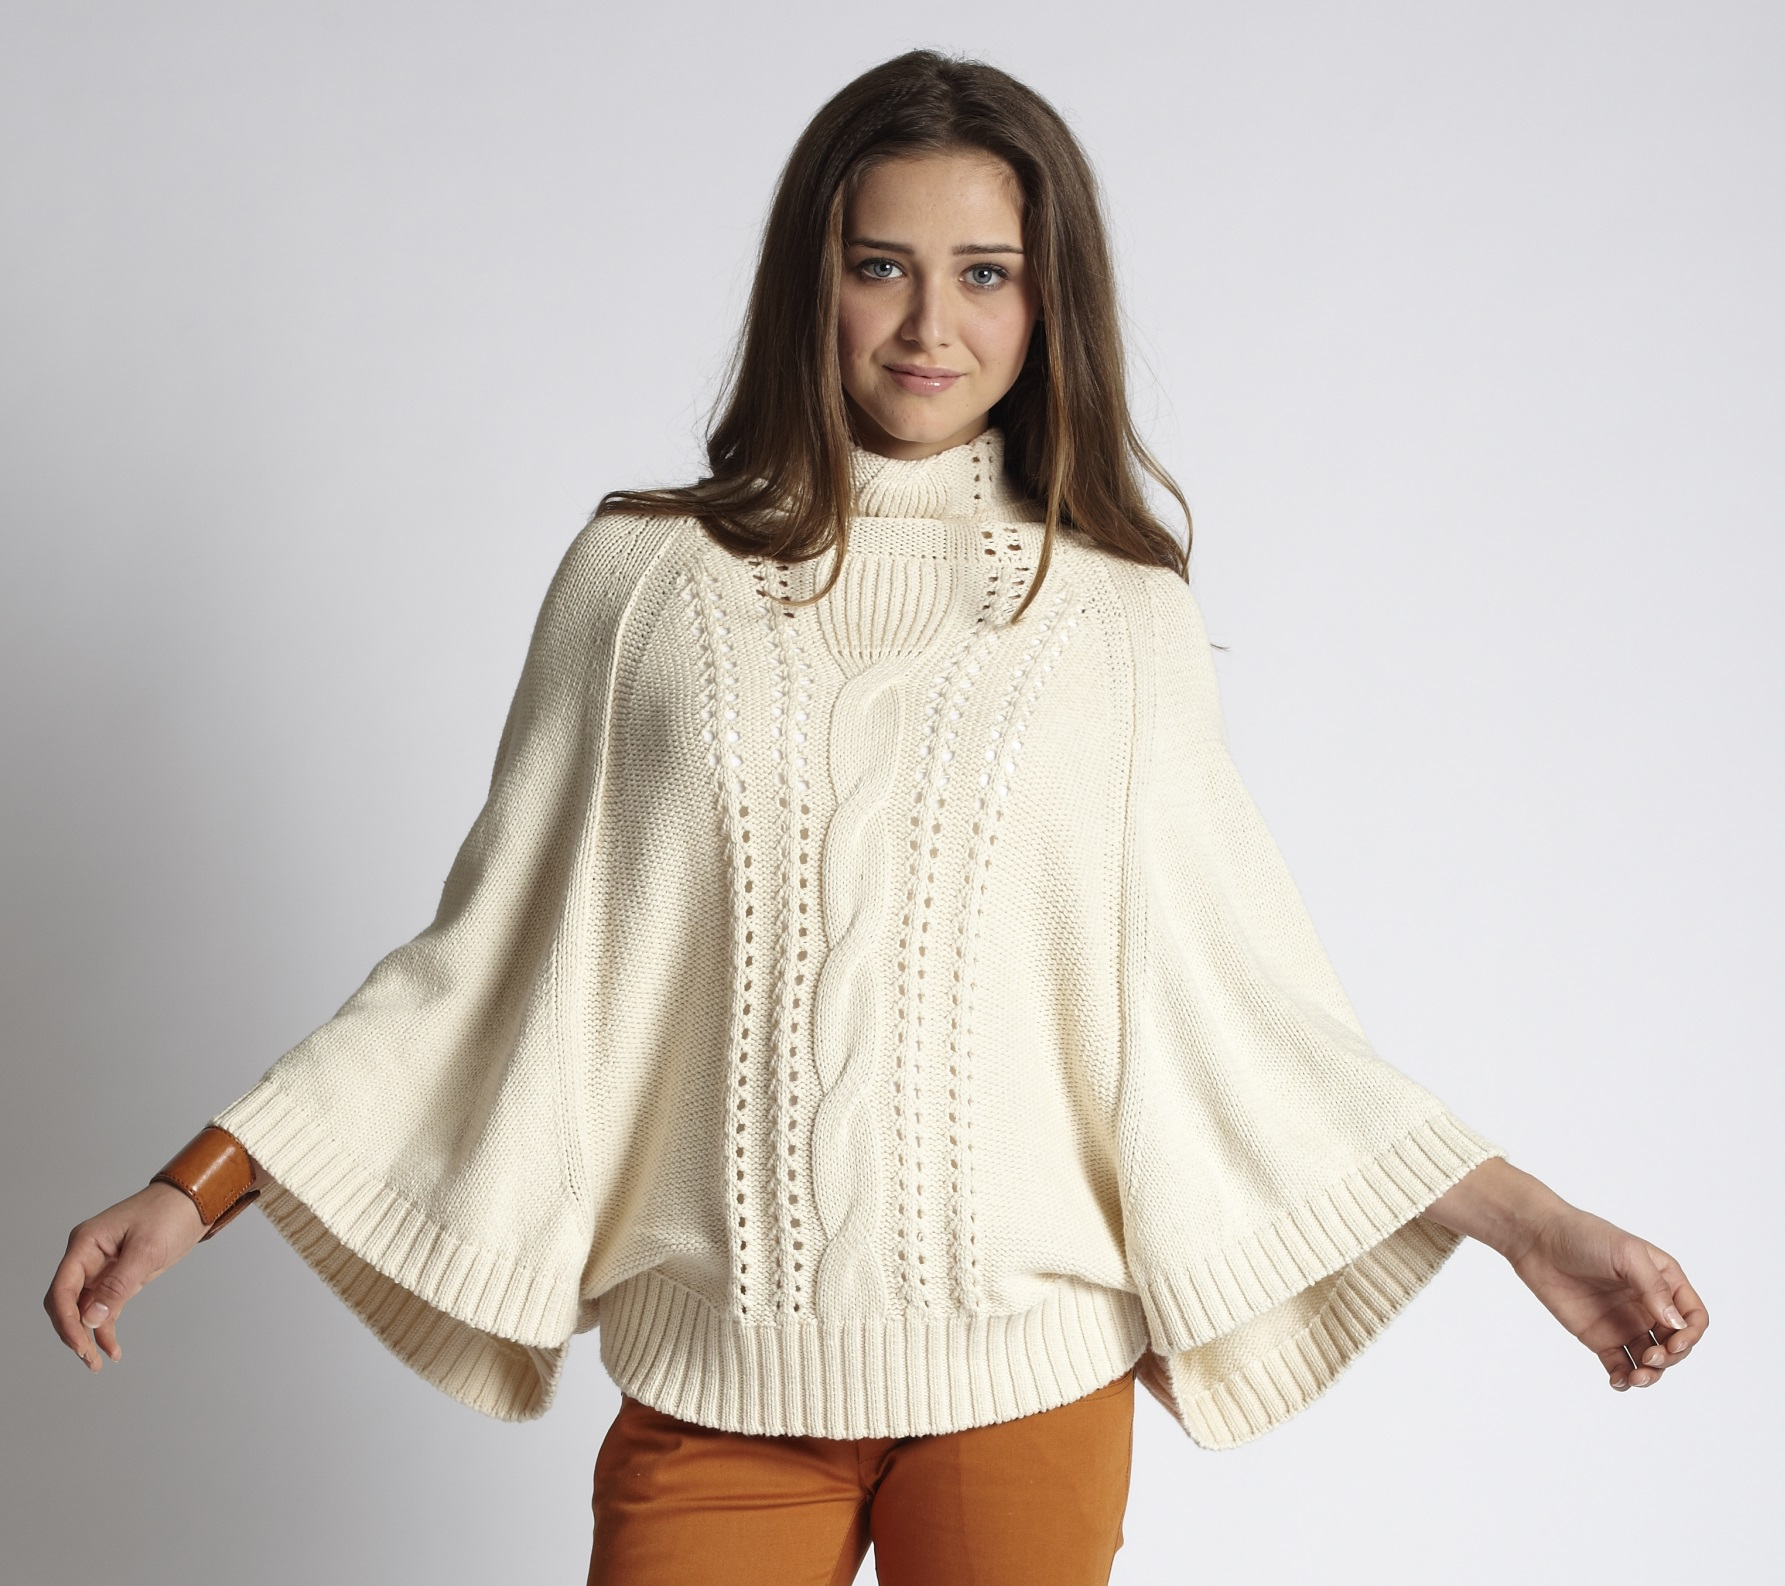 mothers-en-vogue-cable-knit-nursing-poncho-sweater-magnolia.jpg